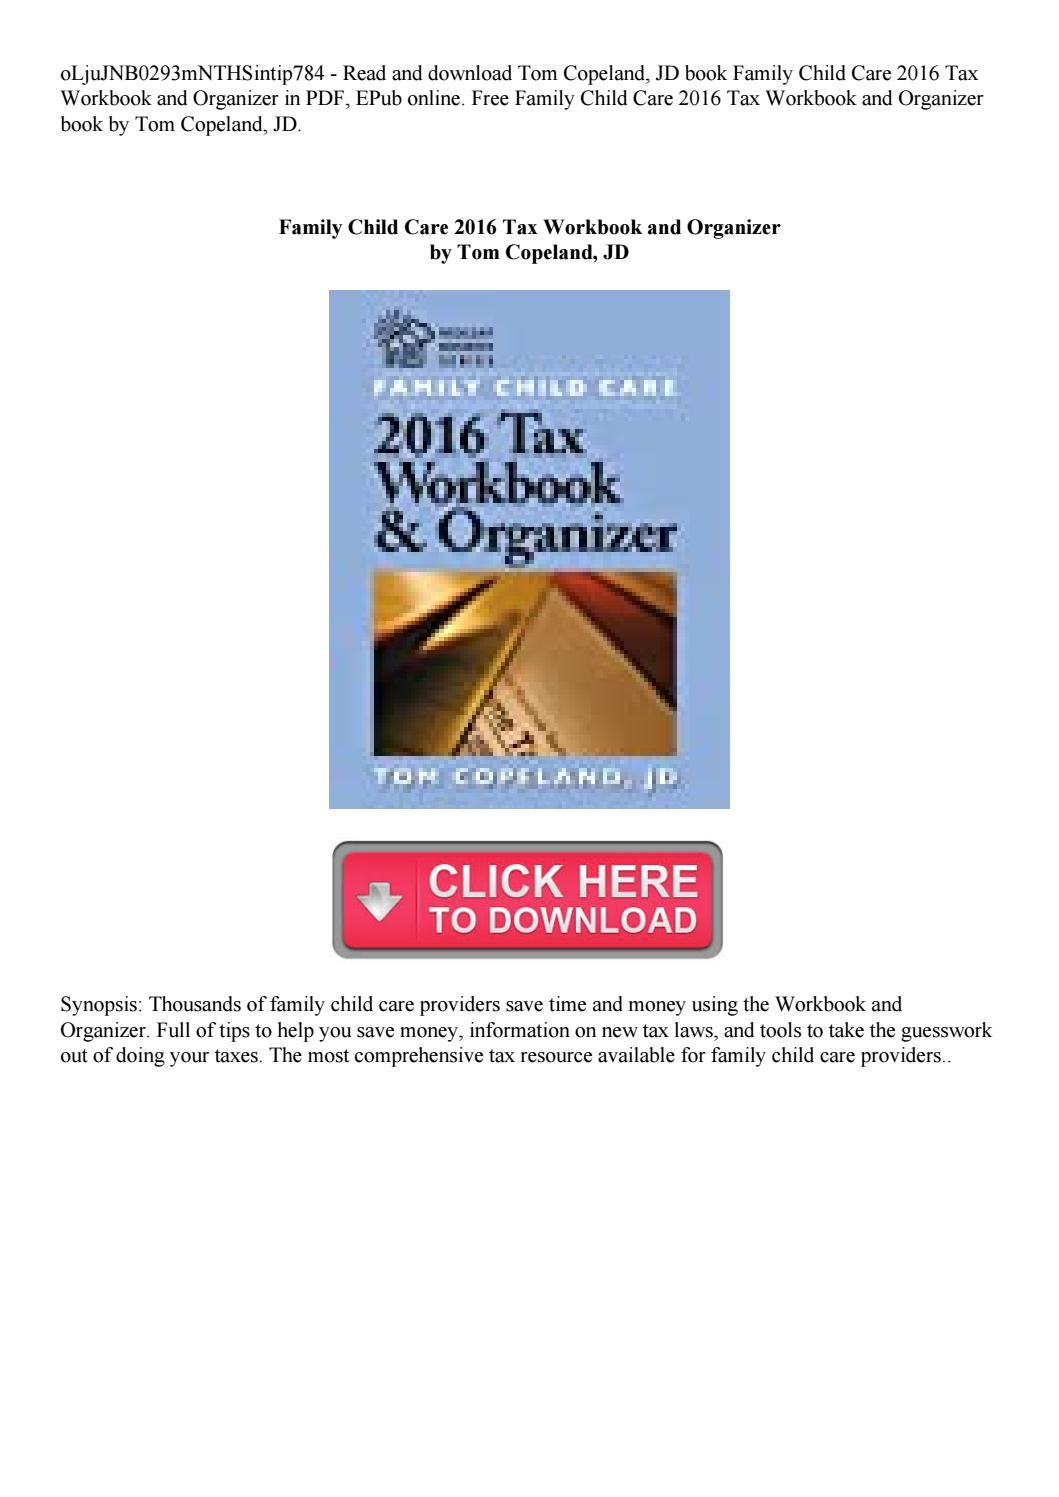 Family Child Care 2016 Tax Workbook And Organizer By Rotipisang27 - Online Tax Organizer